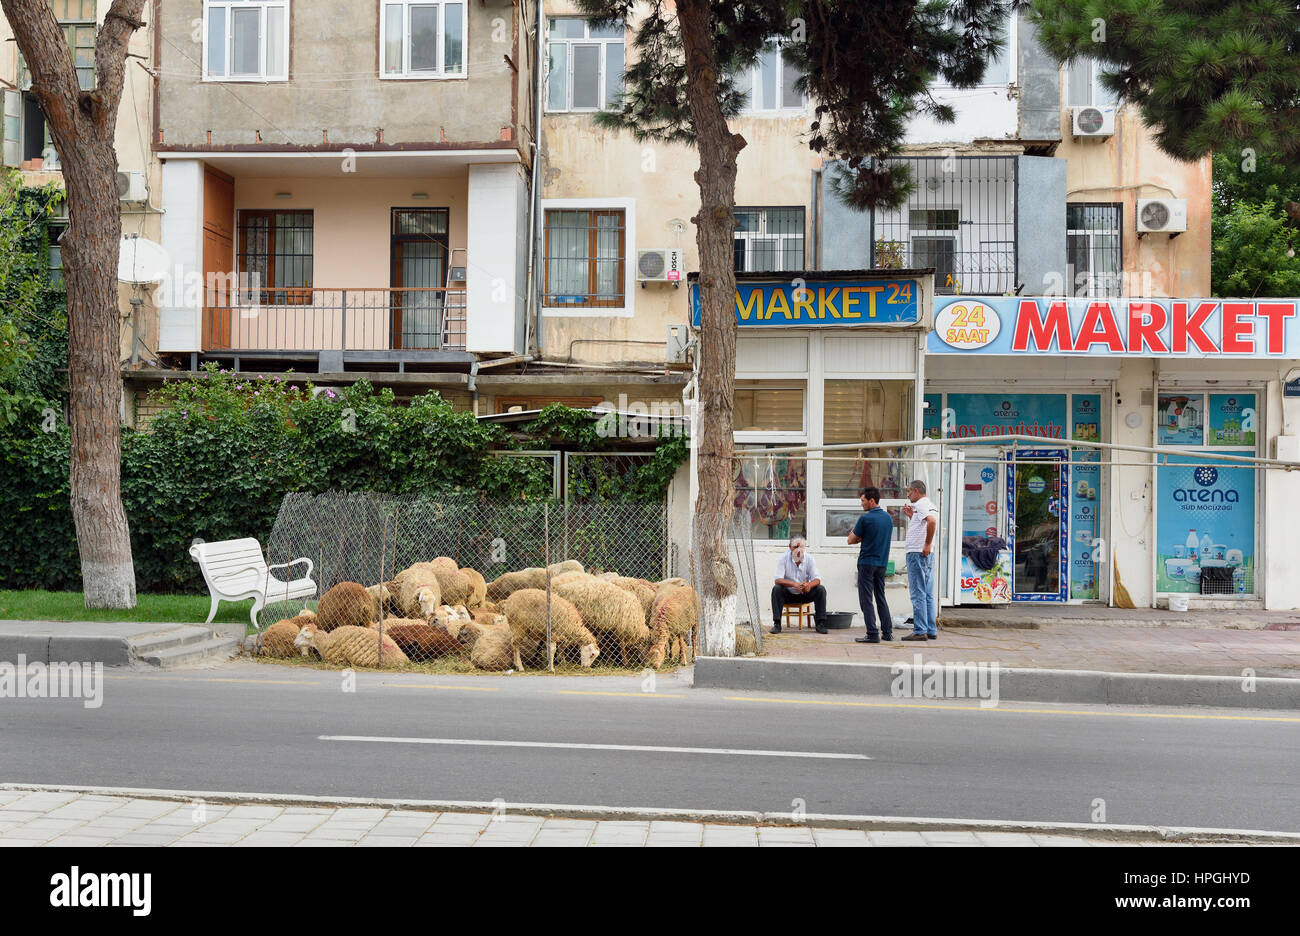 Baku, Azerbaijan - September 11, 2016: People sale sheeps on the street in city during Bakrid festival Eid al-Adha - Stock Image